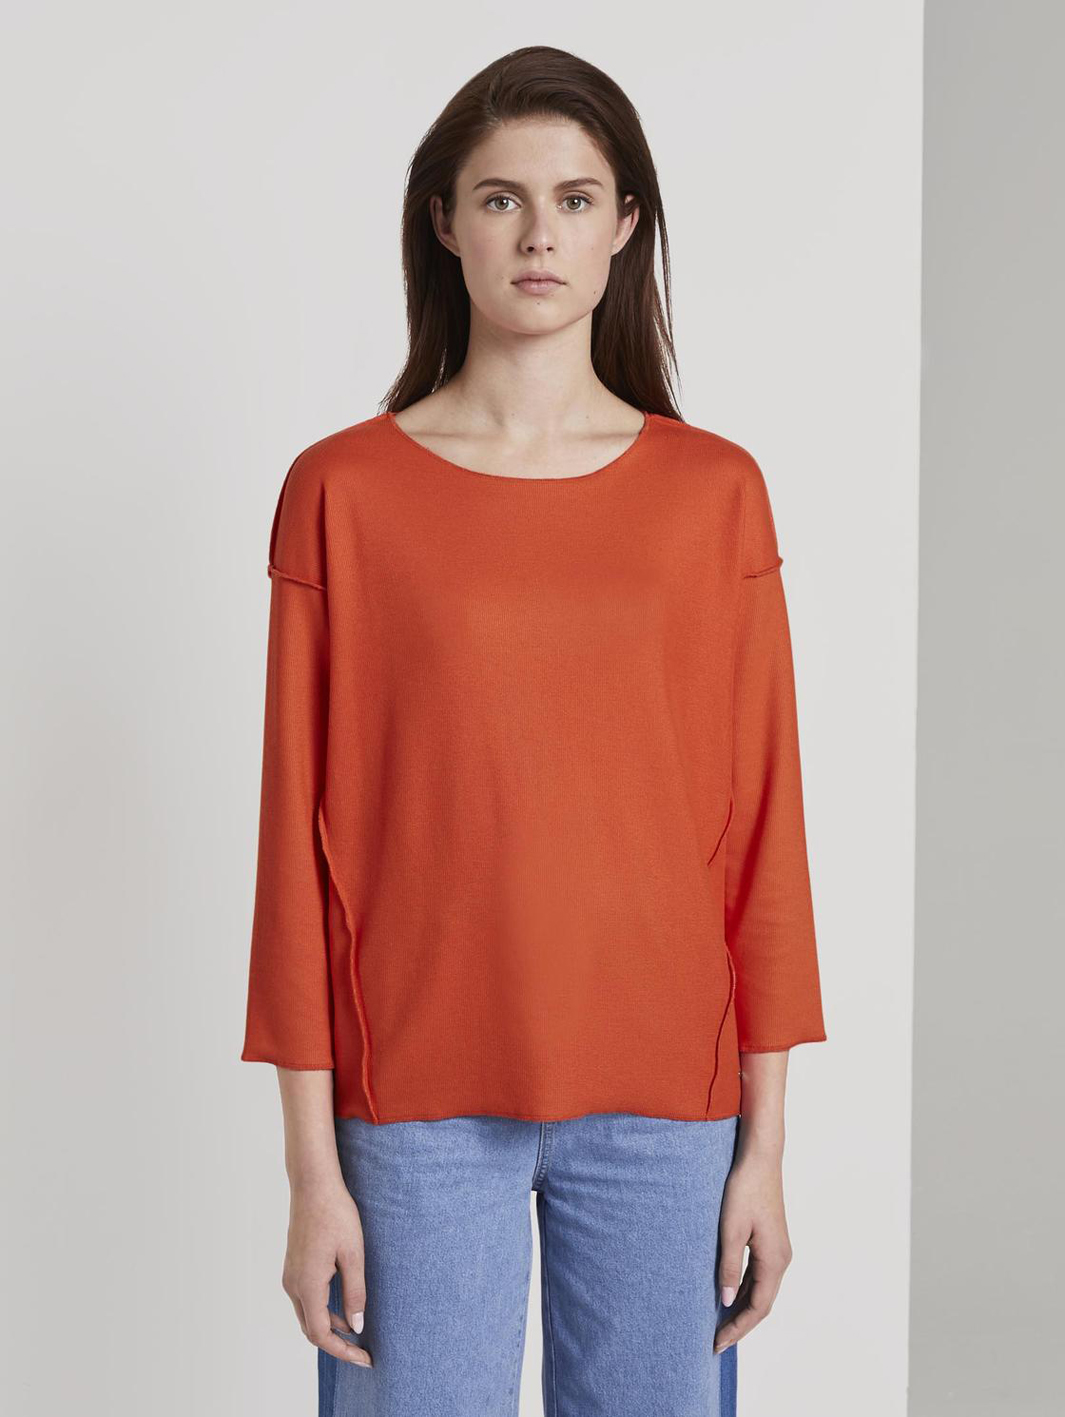 Tom Tailor geripptes Oversized Shirt red